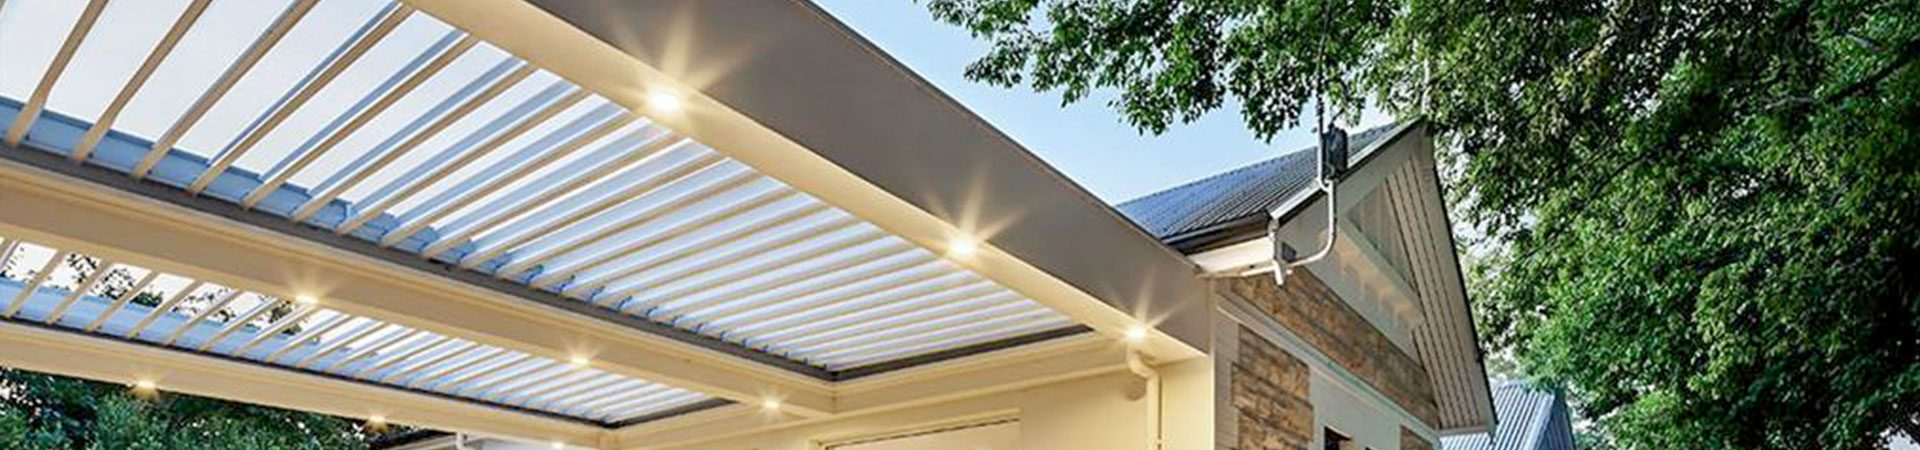 Louvre Roof Pergola with outdoor lighting adelaide